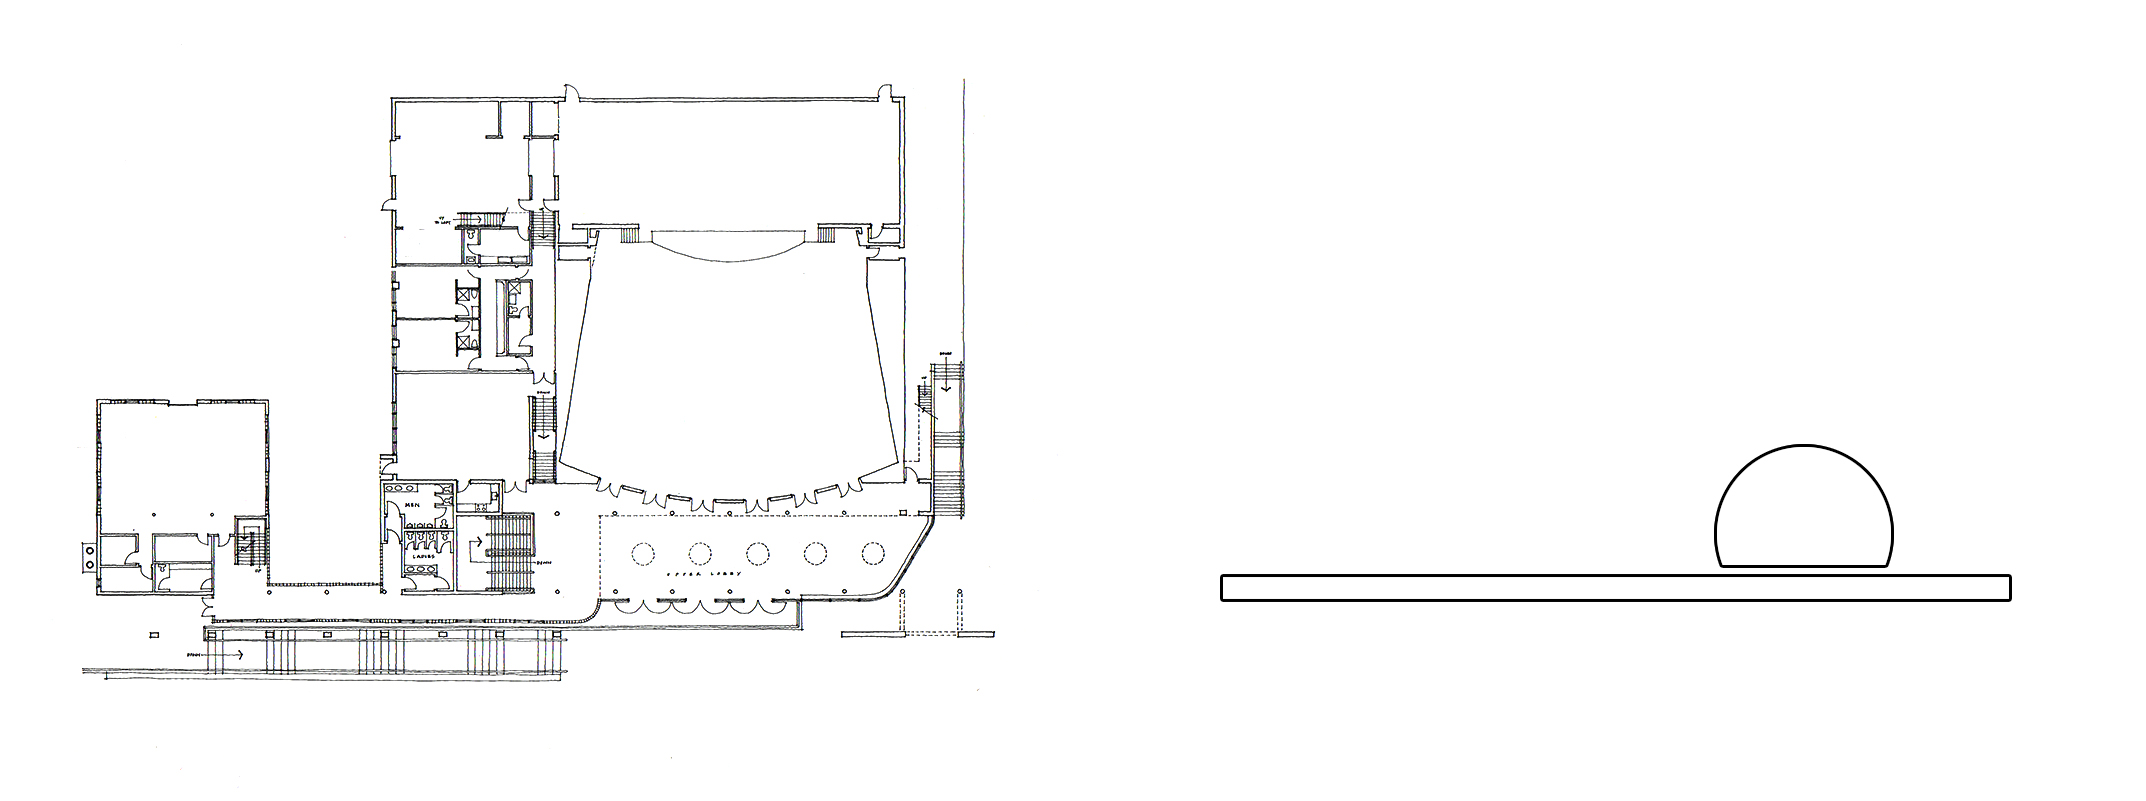 The Hill School Performing Arts Building; Pottstown, PA (left)  |  Conceptual Parti Diagram (right)